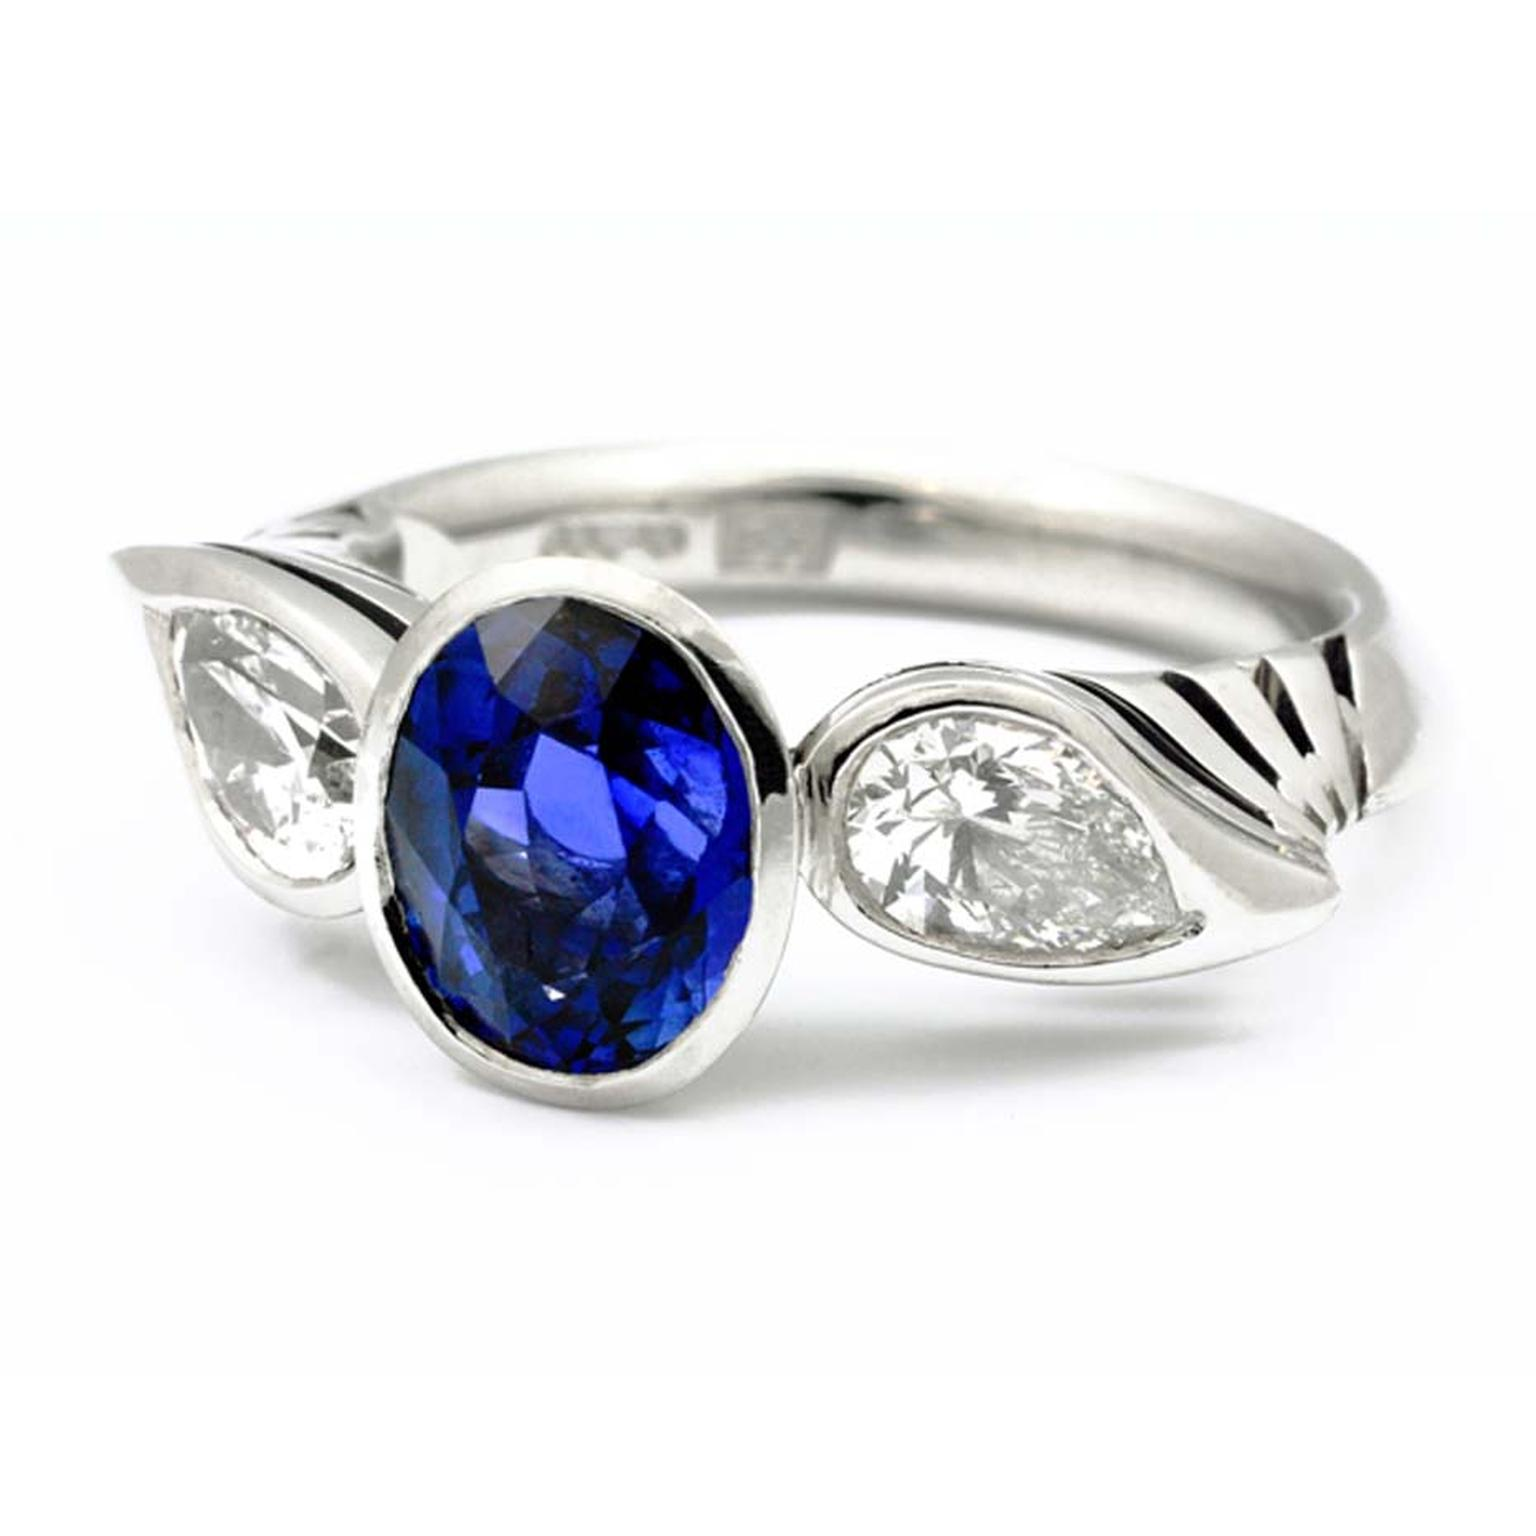 Andrew English brilliant-cut sapphire and pear-shaped diamond Prema ring.